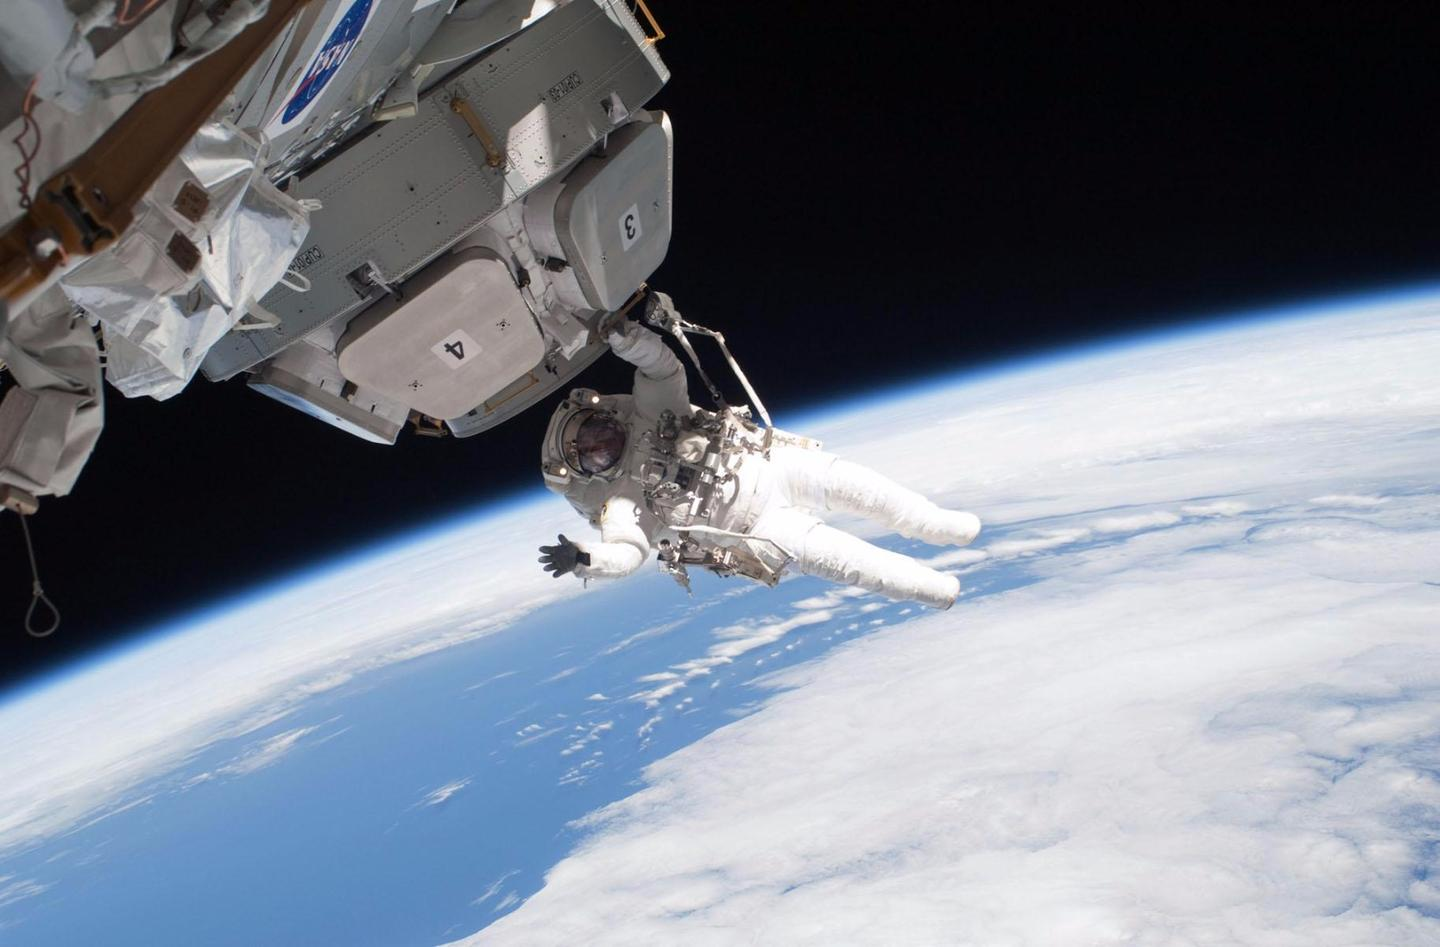 Astronaut tethered to the cupola module of the International Space Station